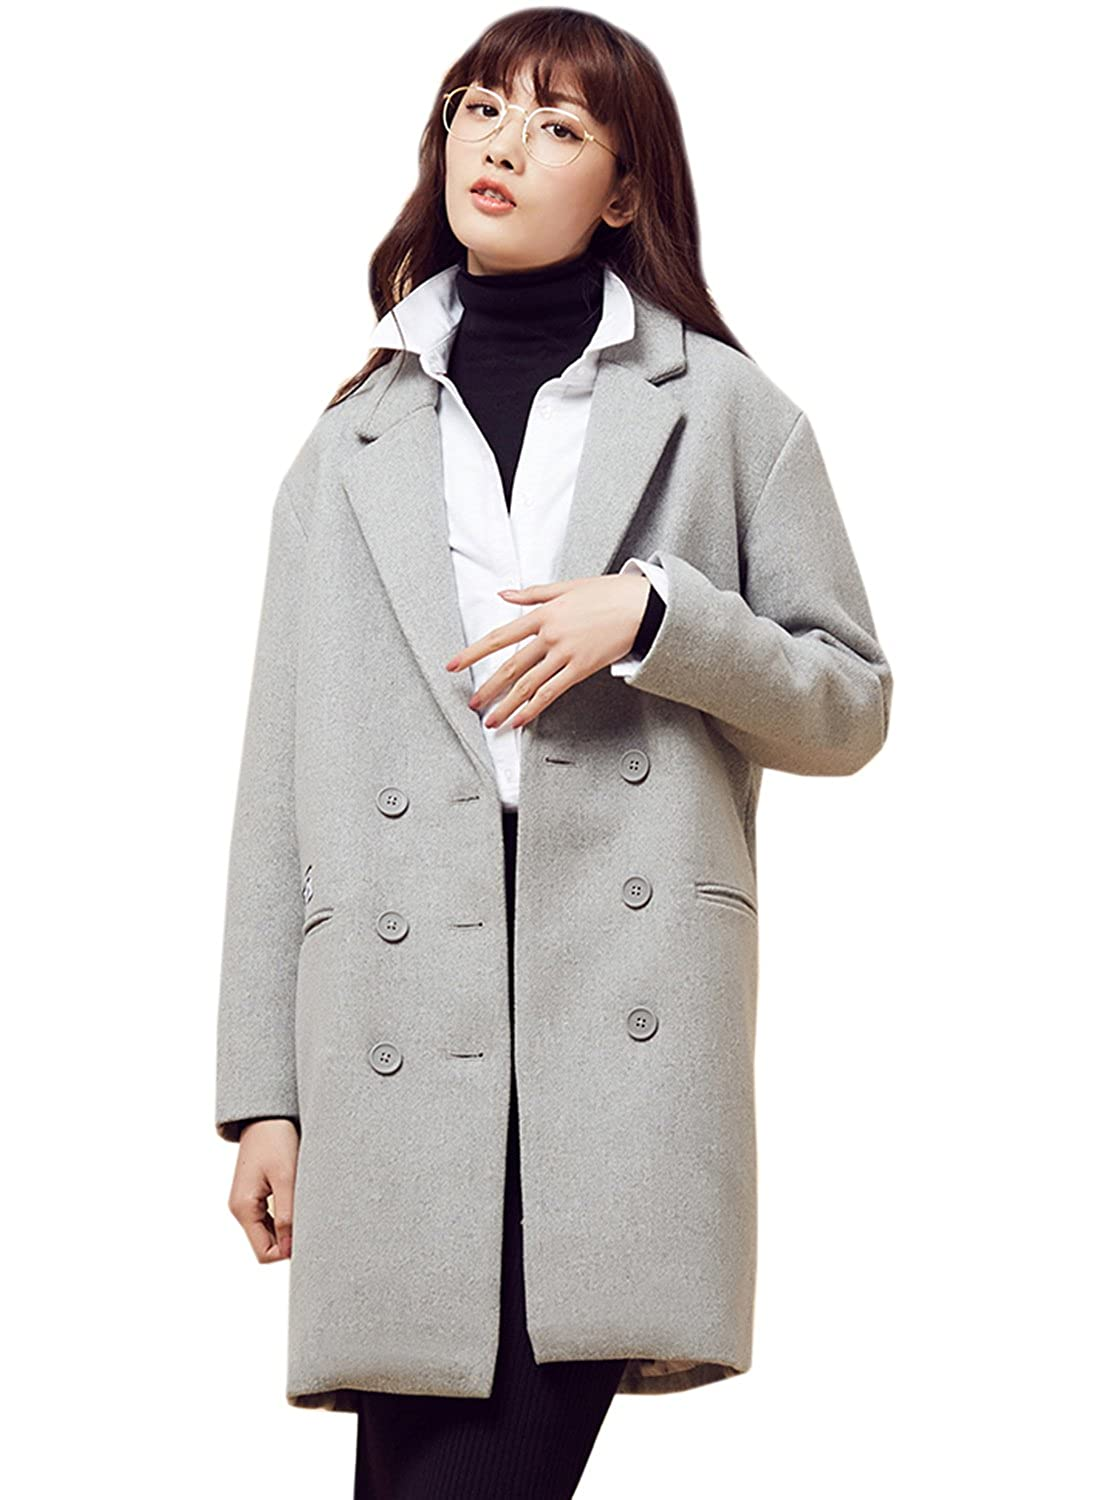 Meters/bonwe Women's Drop Shoulder Notch Lapel Woolen Coat